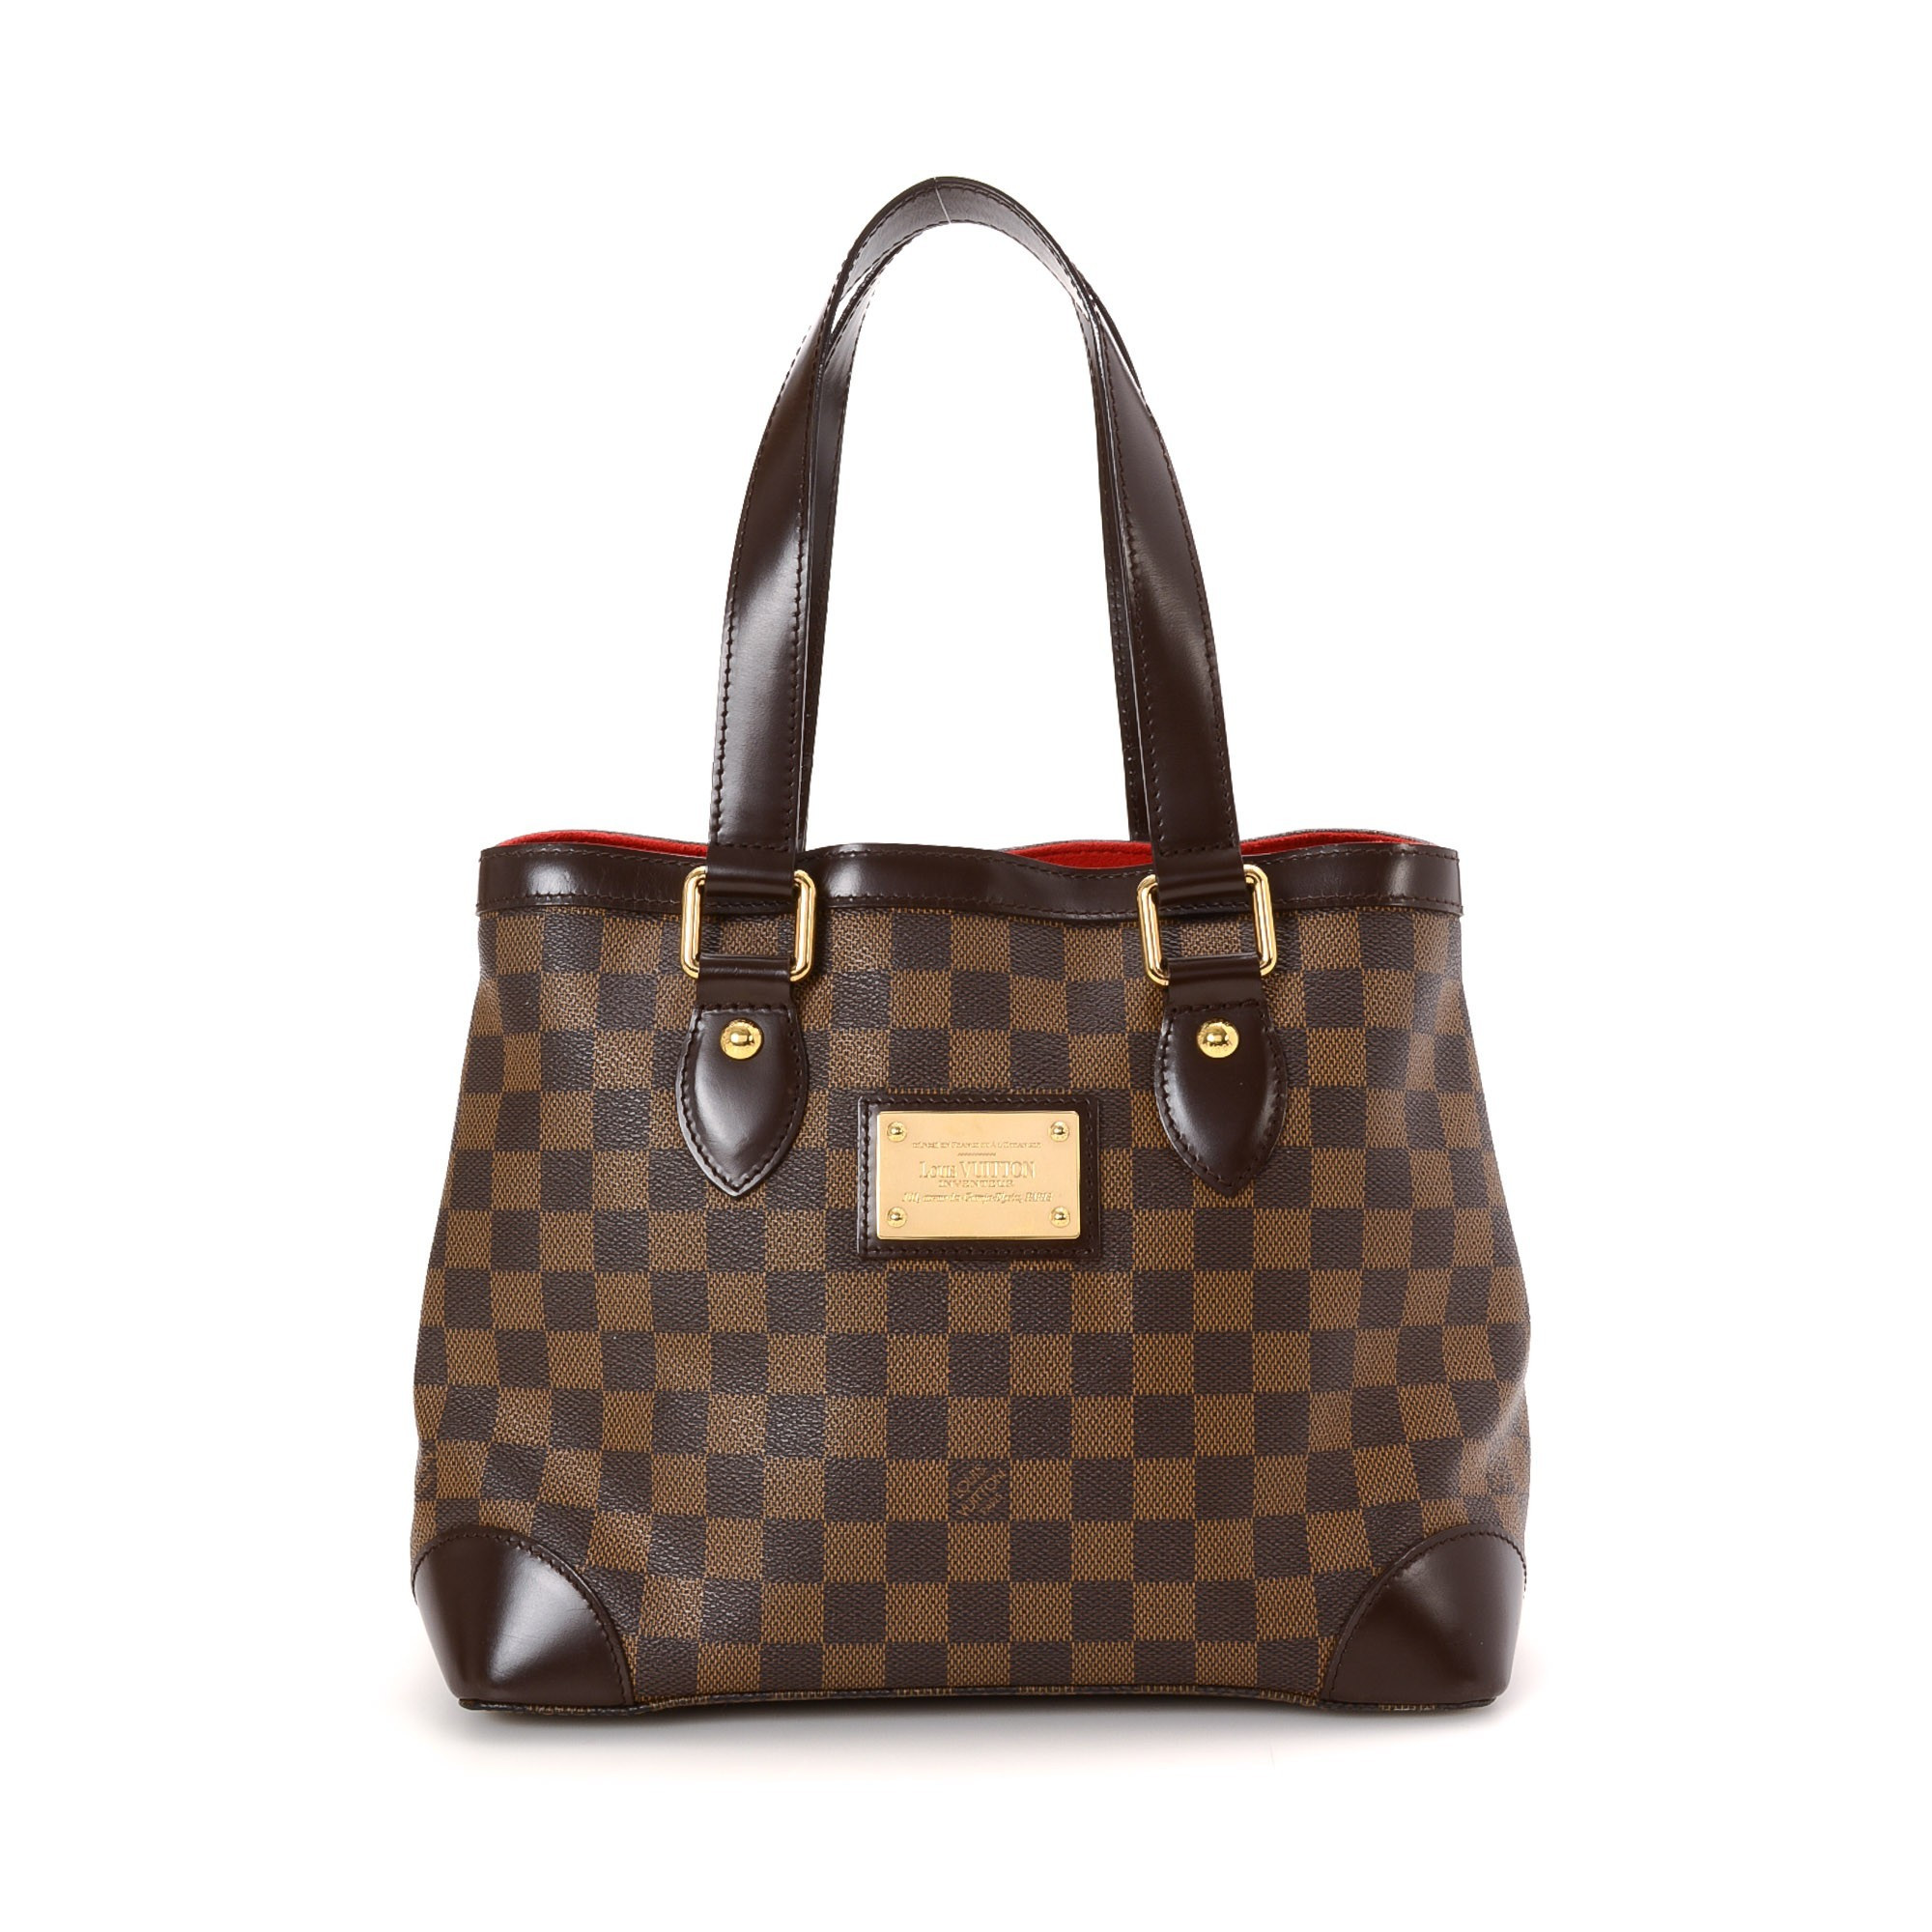 Louis Vuitton Hampstead PM Damier Ebene Brown Coated Canvas Shoulder Bag LXRCO